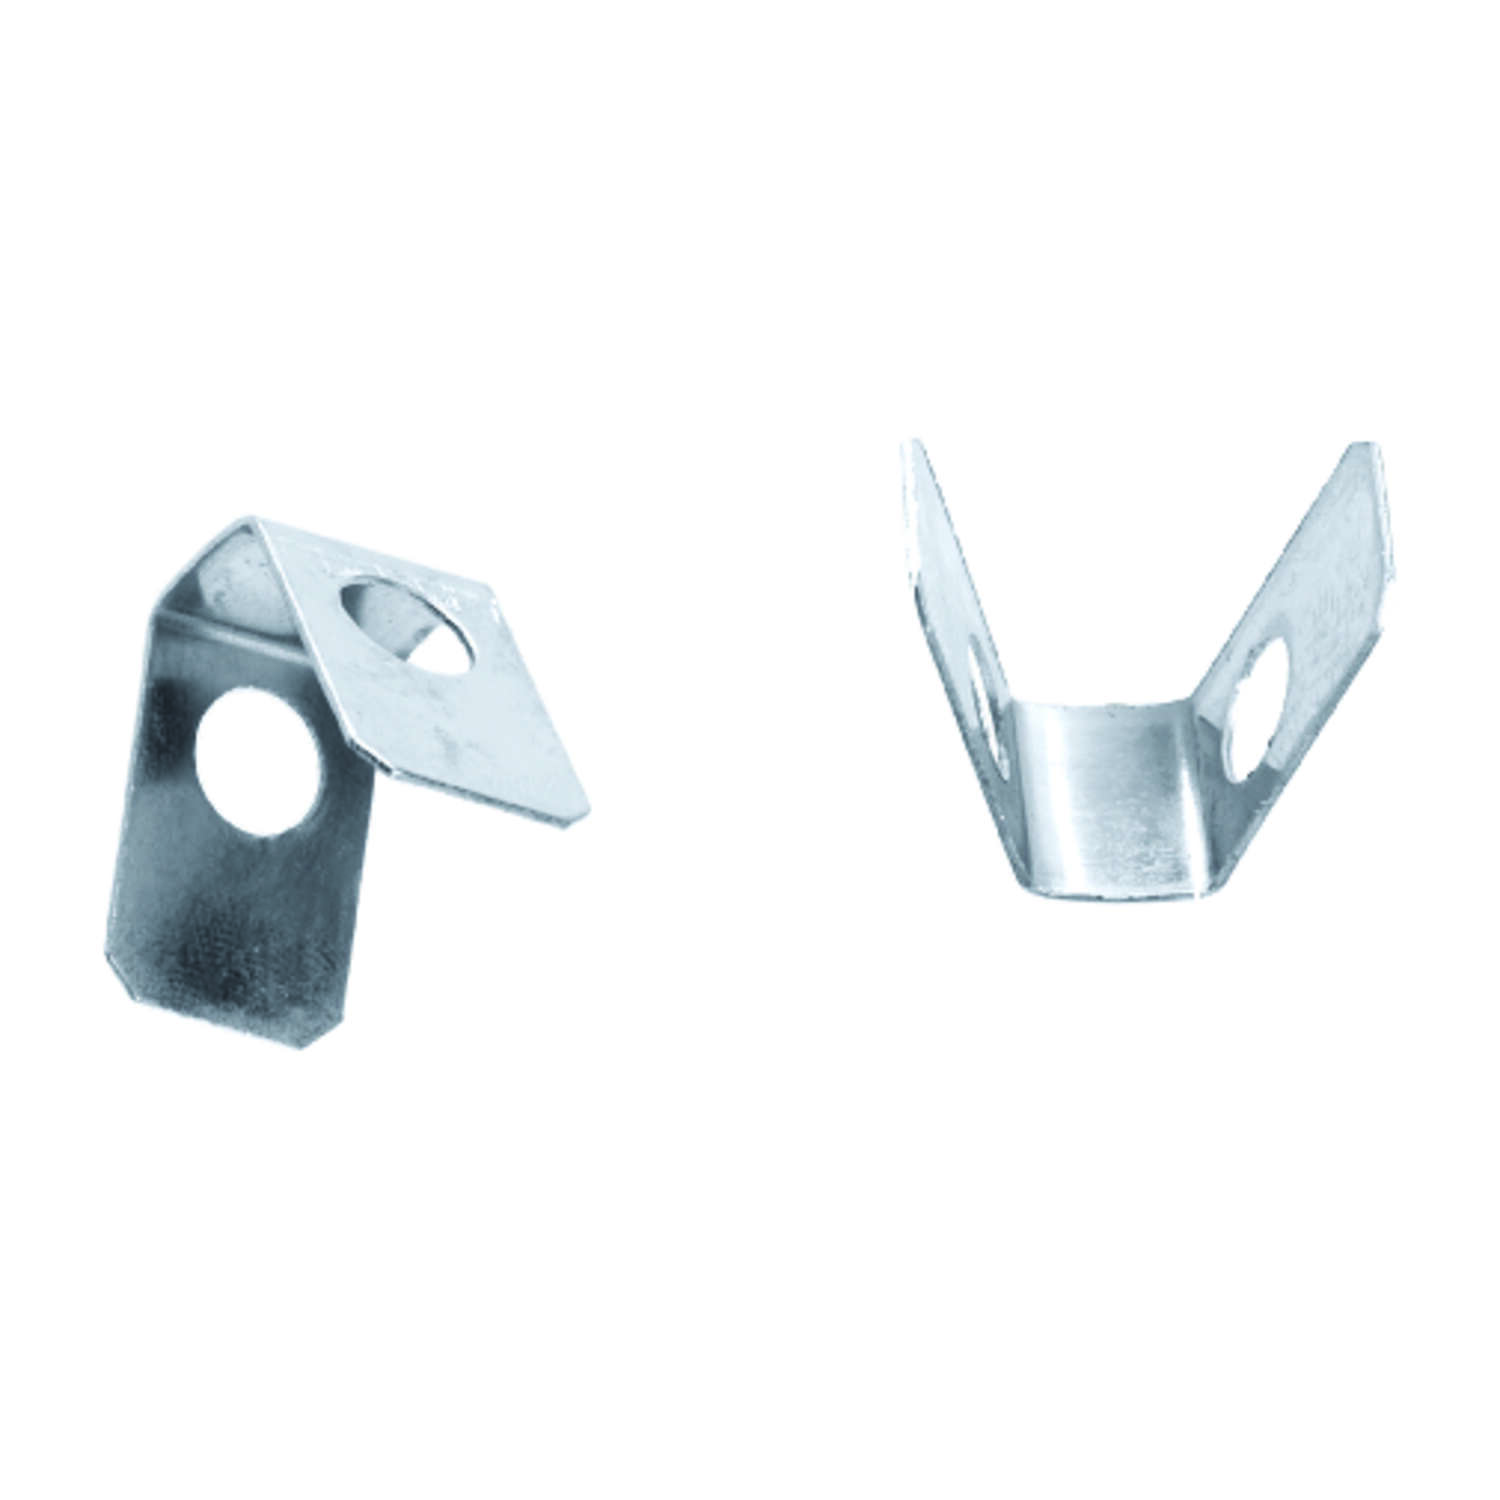 Danco 6-3/8 in. L Clevis Clip Steel